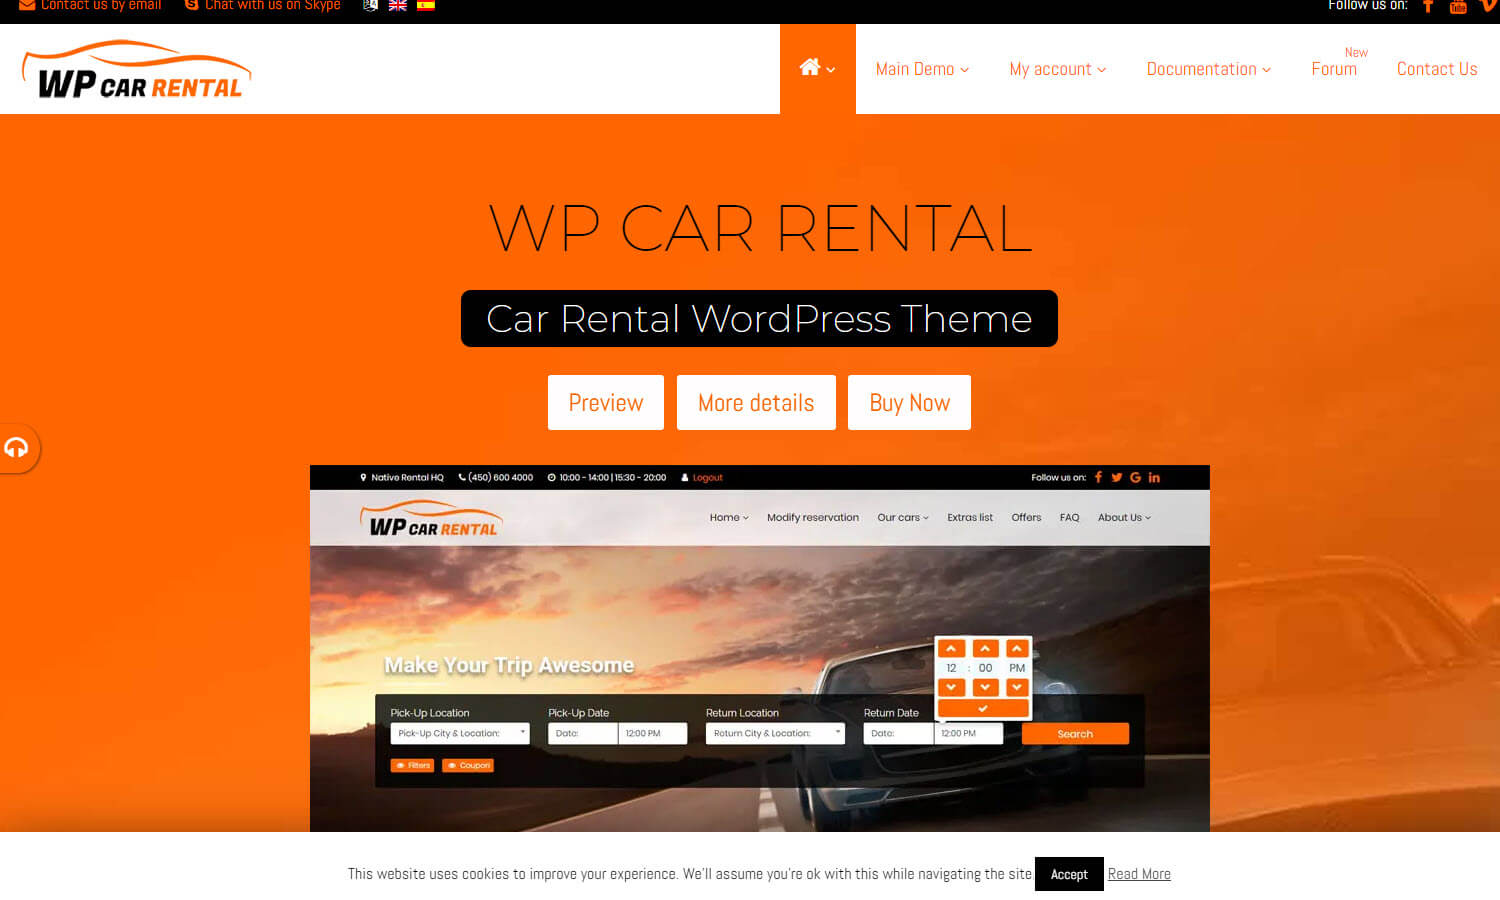 WP Car Rental screenshot